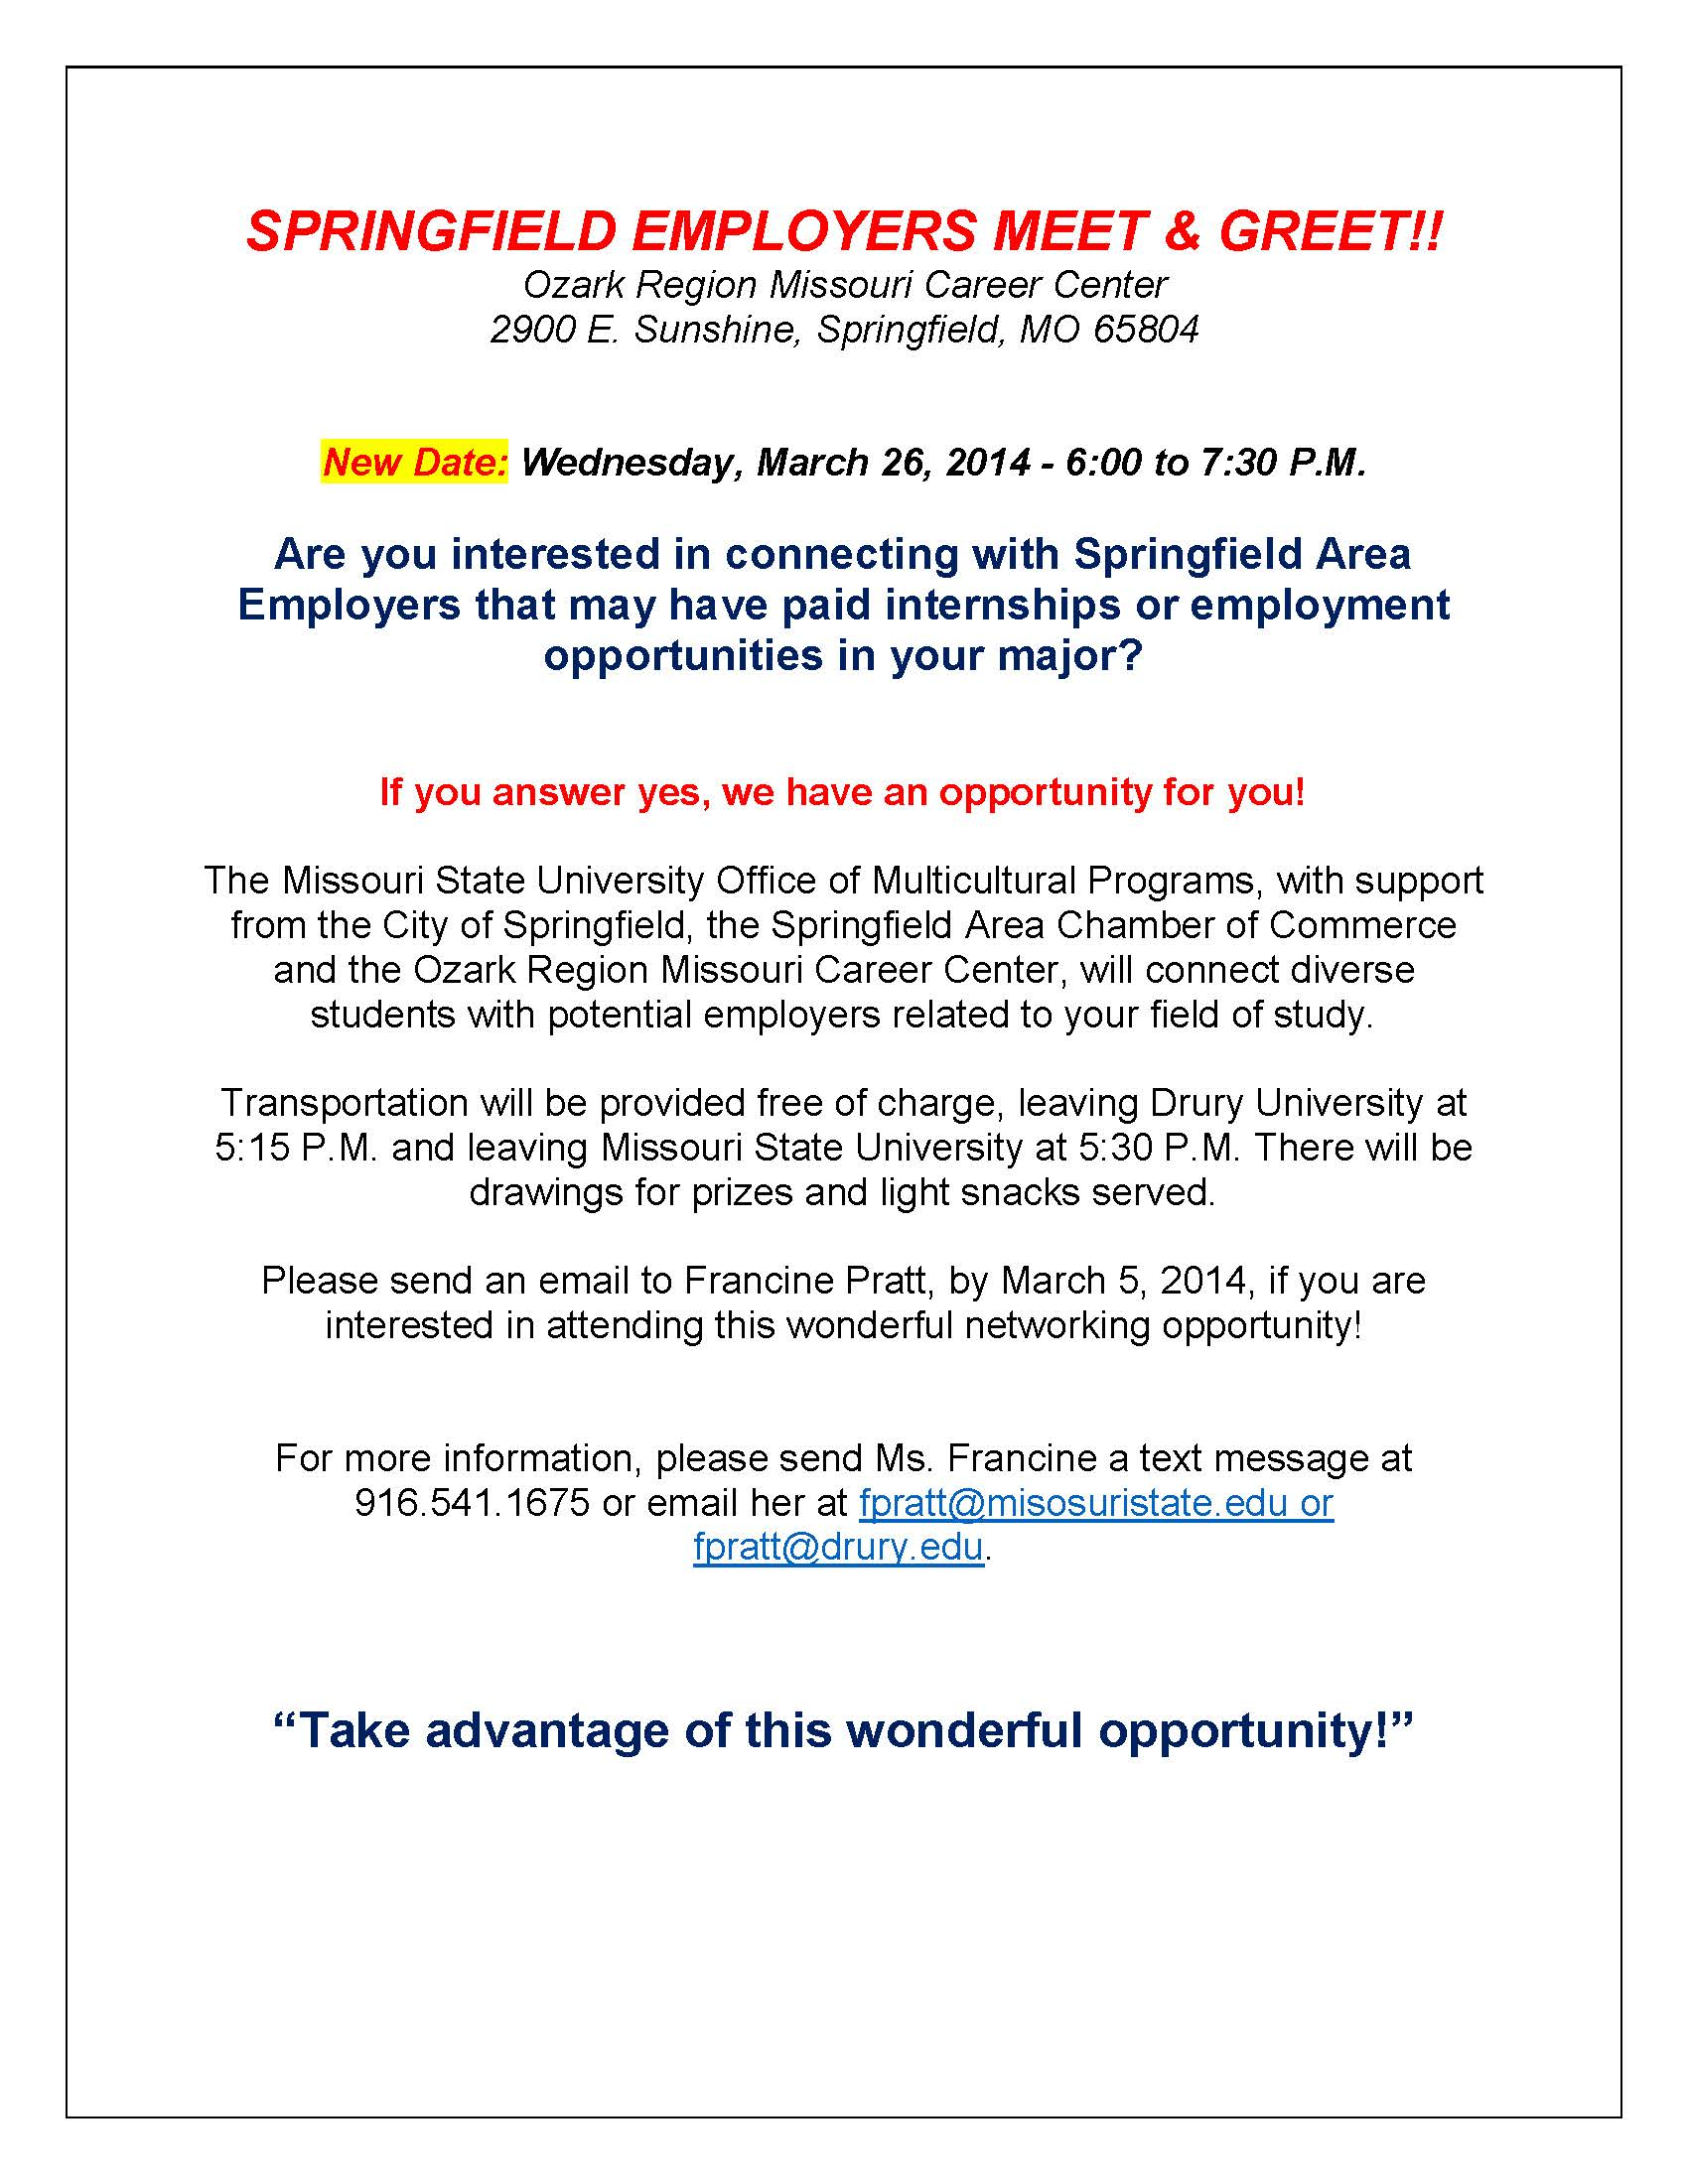 Springfield Employers Meet And Greet New Date